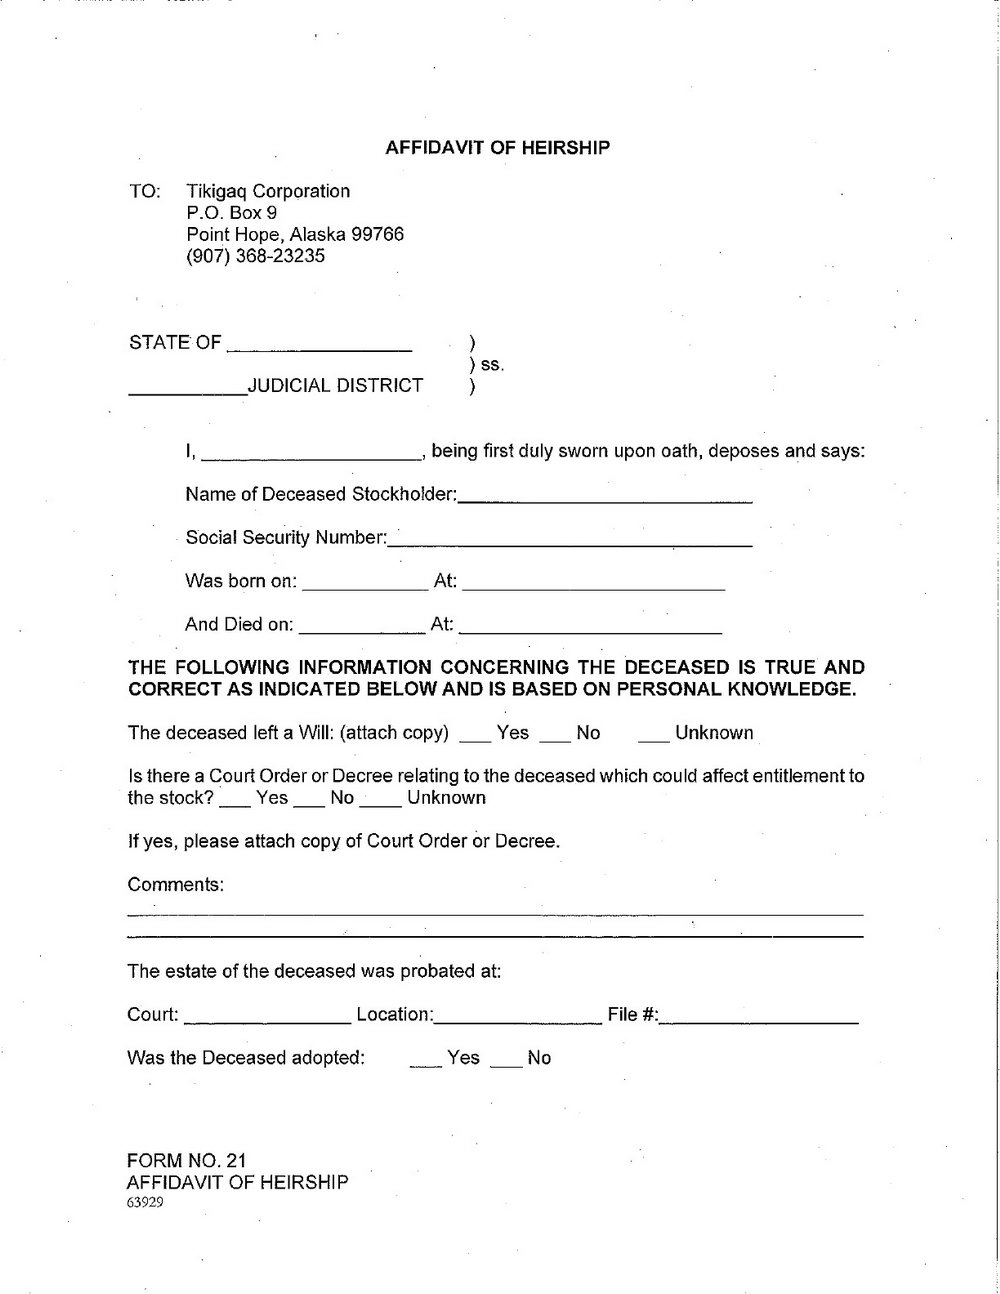 Affidavit Of Heirship Form